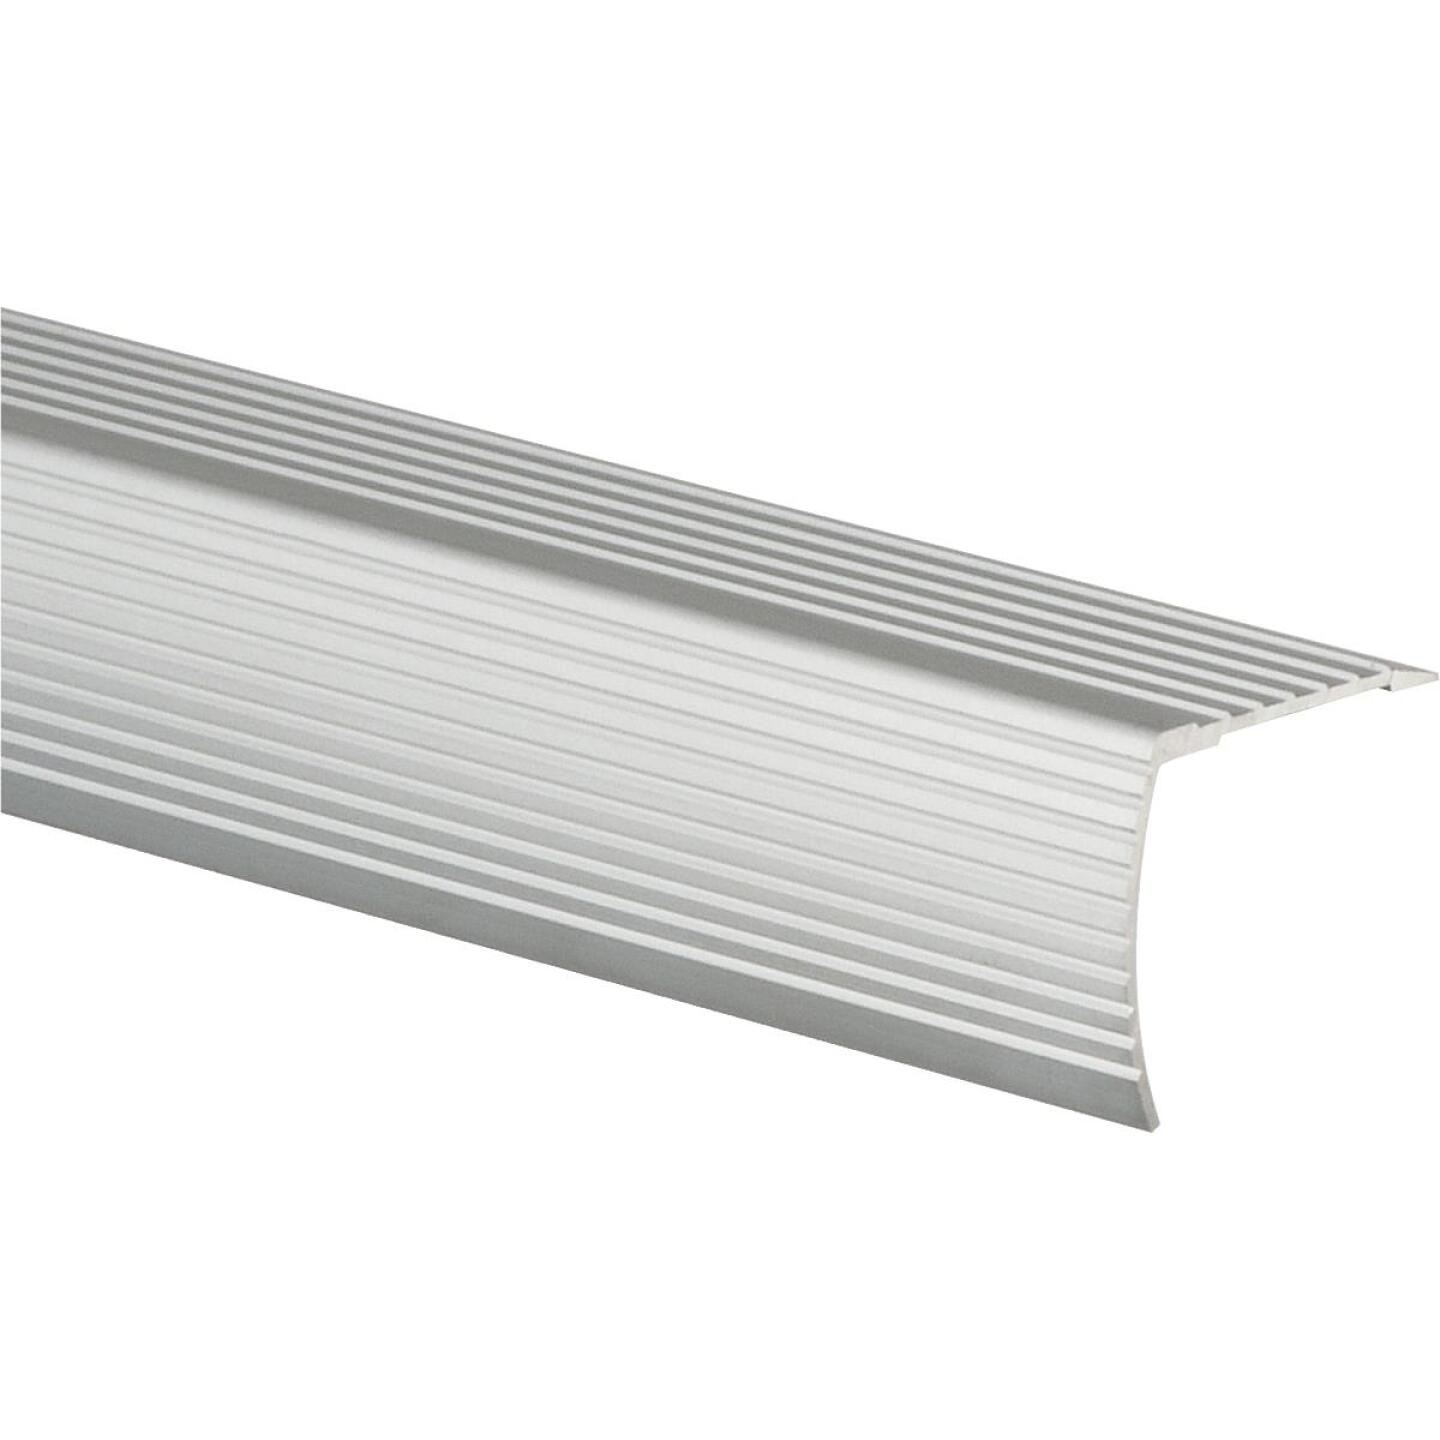 Frost King Satin Silver 1-1/8 In. W x 36 In. L Aluminum Stairnose Image 1